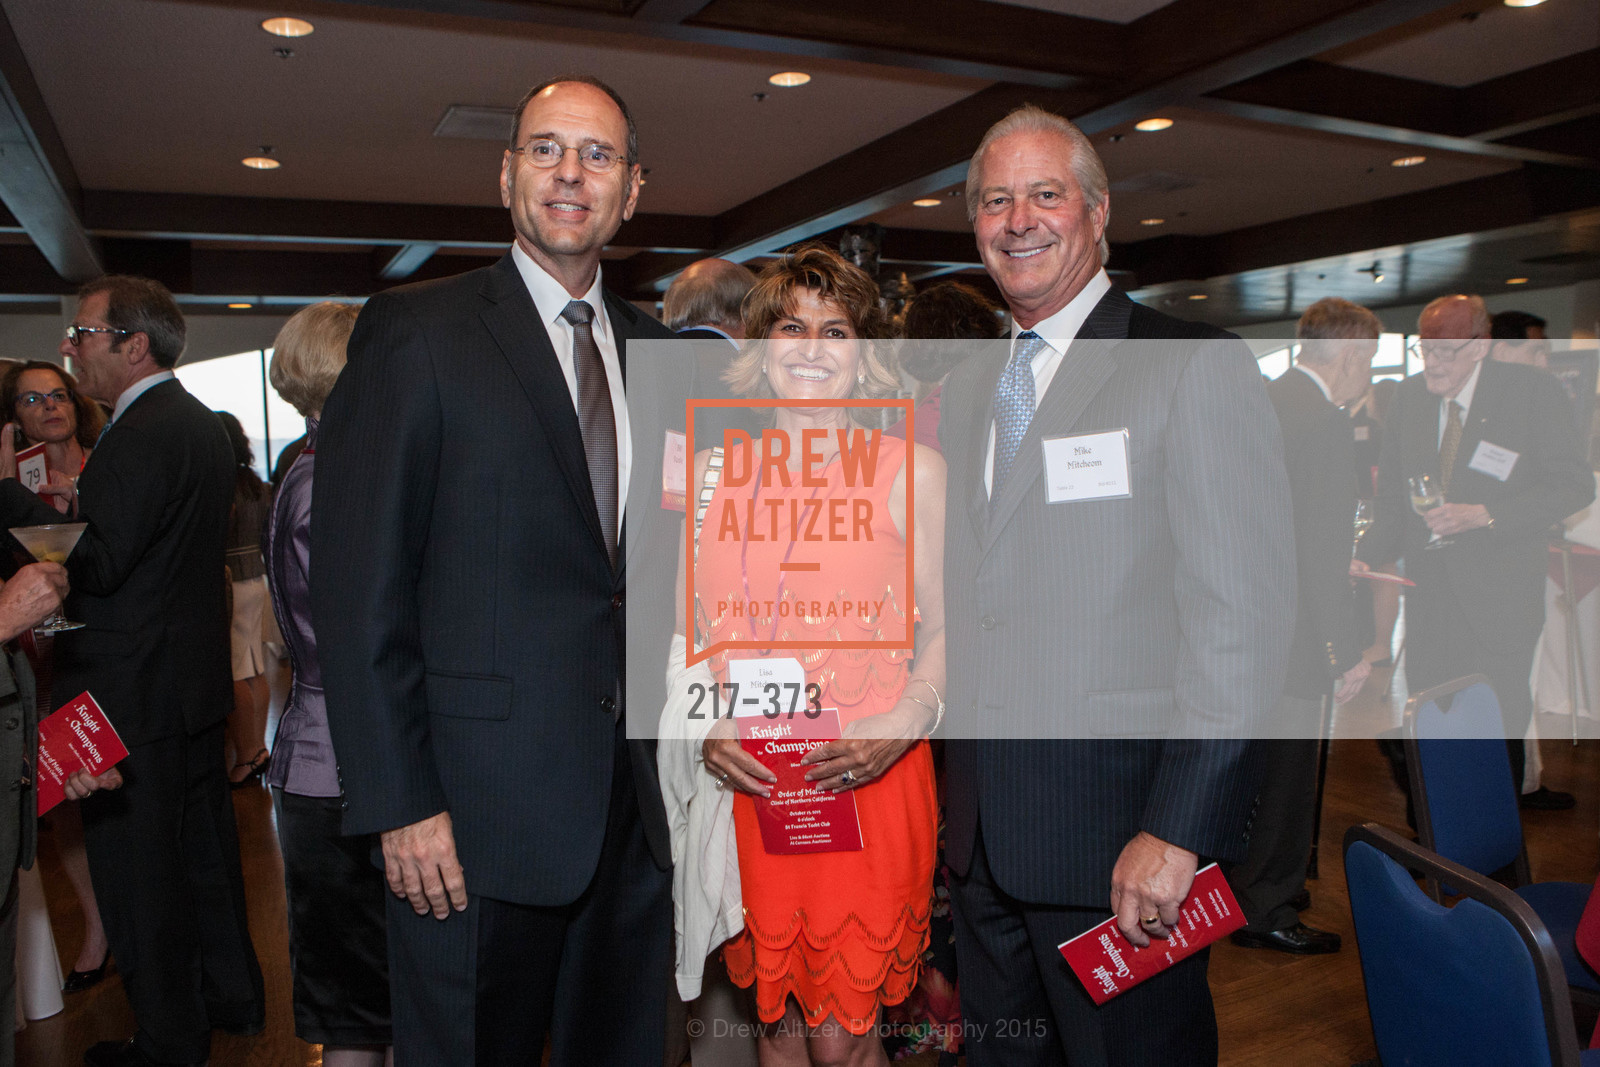 Bill Vaculin, Lisa Mitcheom, Michael Mitcheom, Sovereign Order of Malta Presents: A Knight for Champions, 7th Annual Silver Chalice Awards Dinner, St. Francis Yacht Club. 99 Yacht Rd, October 13th, 2015,Drew Altizer, Drew Altizer Photography, full-service agency, private events, San Francisco photographer, photographer california